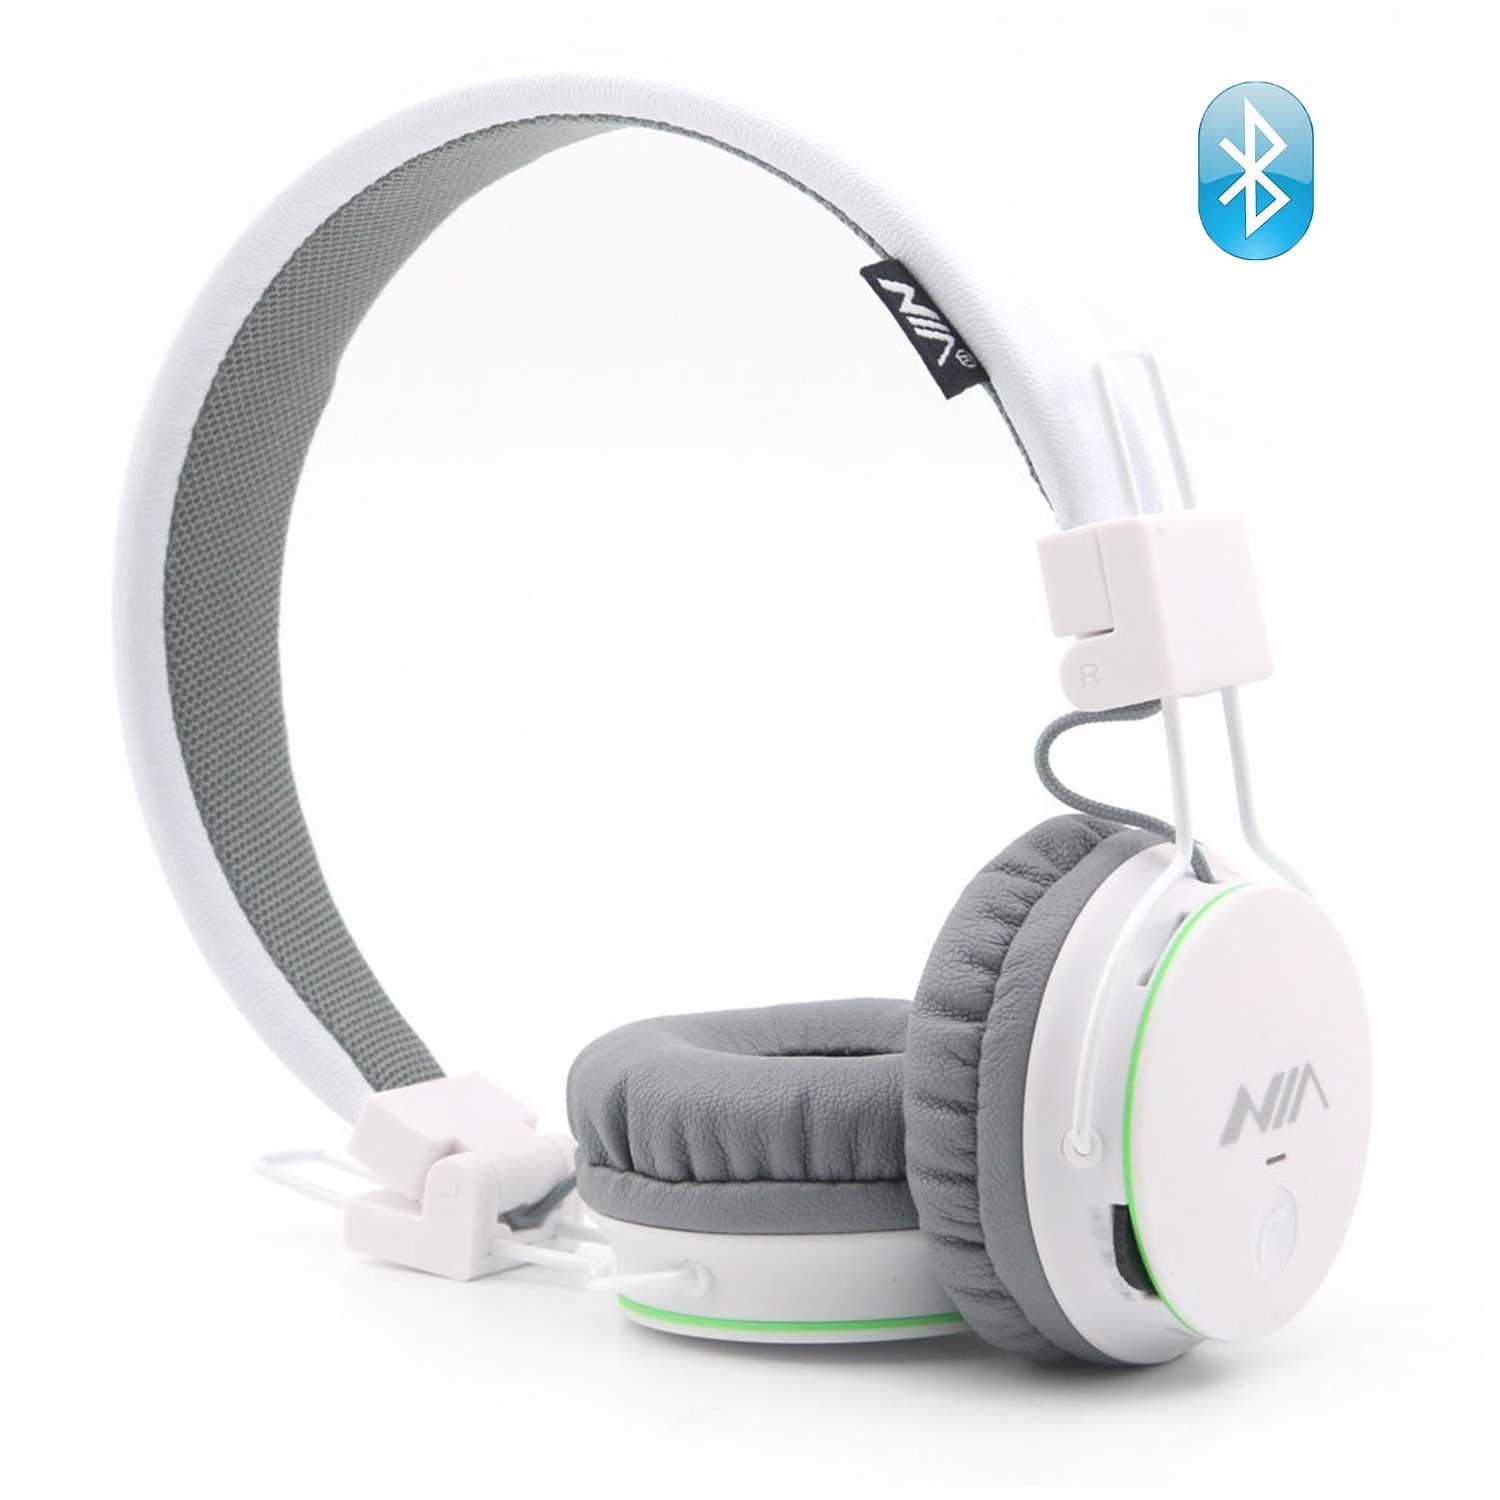 Wireless Bluetooth Headphones for Kids, Over Ear Headset Lightweight Foldable SD Card and FM Radio, Built-in Mic and Wired Mode for Computer Laptop iPhone Cell Phone and Travelling Plane (White)